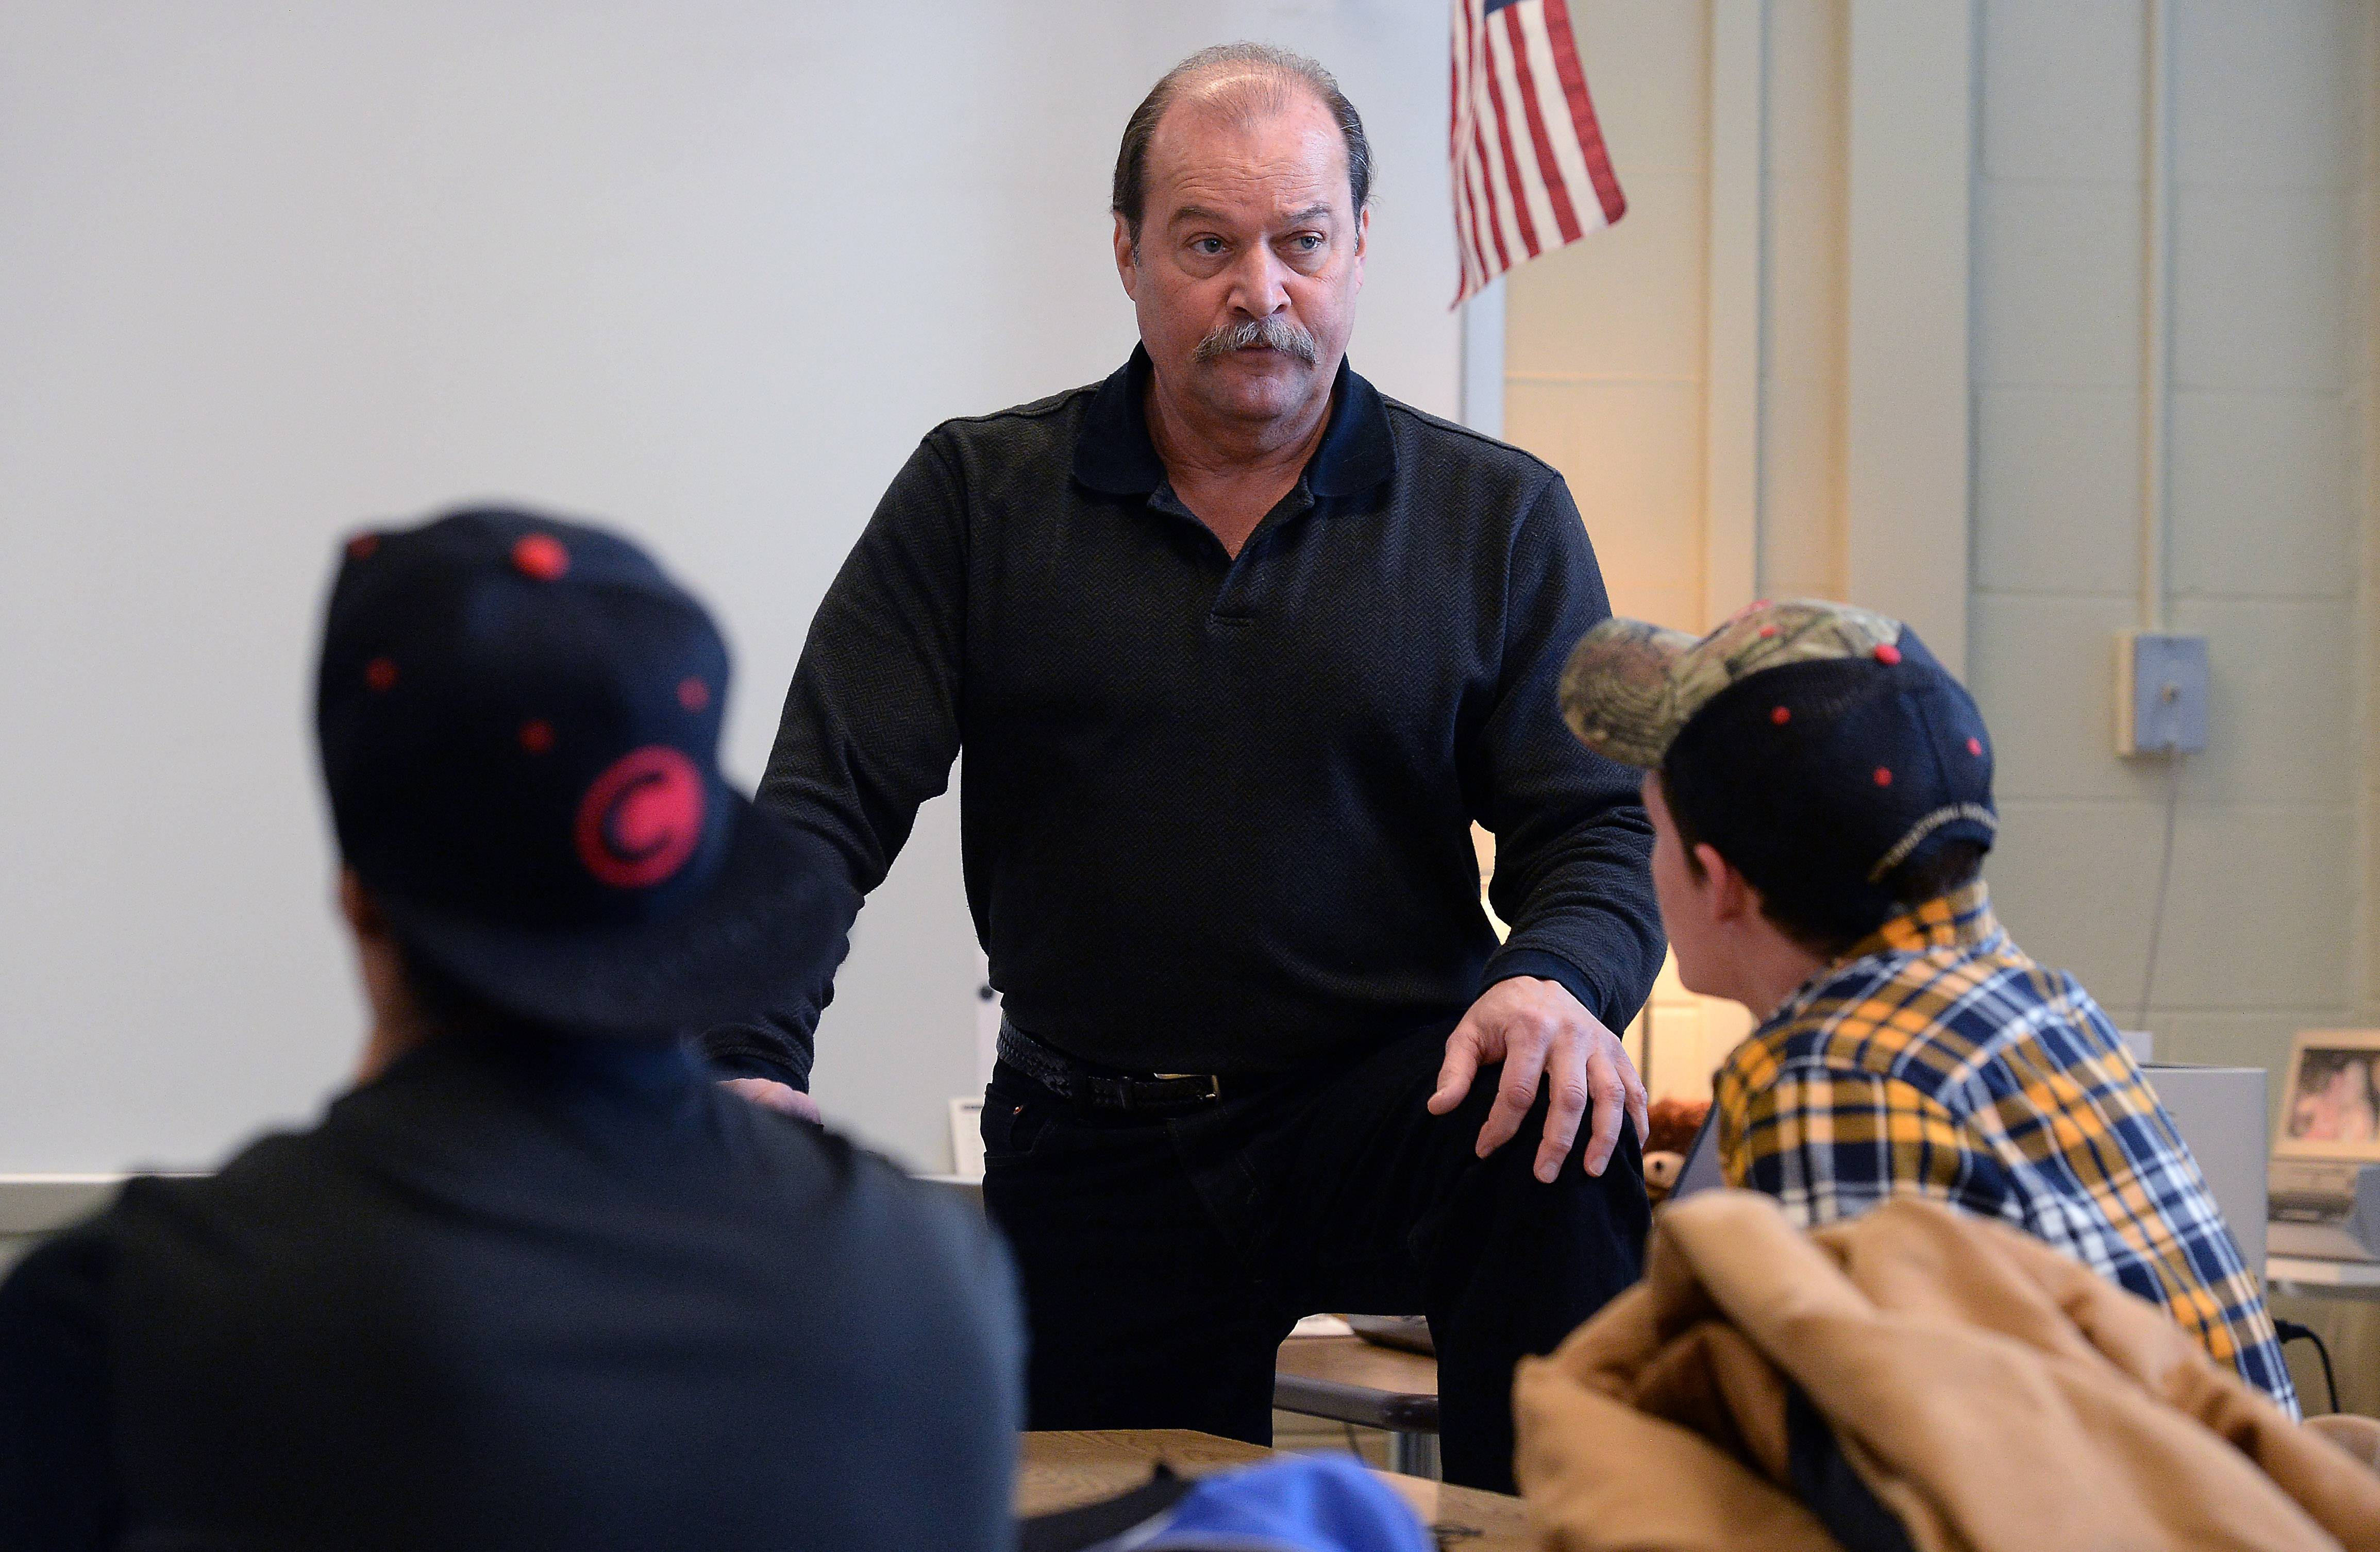 Bill Palmer addresses his students in his Resources in Interpersonal Communications class at Barrington High School. Palmer dropped out of Barrington High 46 years ago and uses his experience to help his students avoid making the same mistake he did.